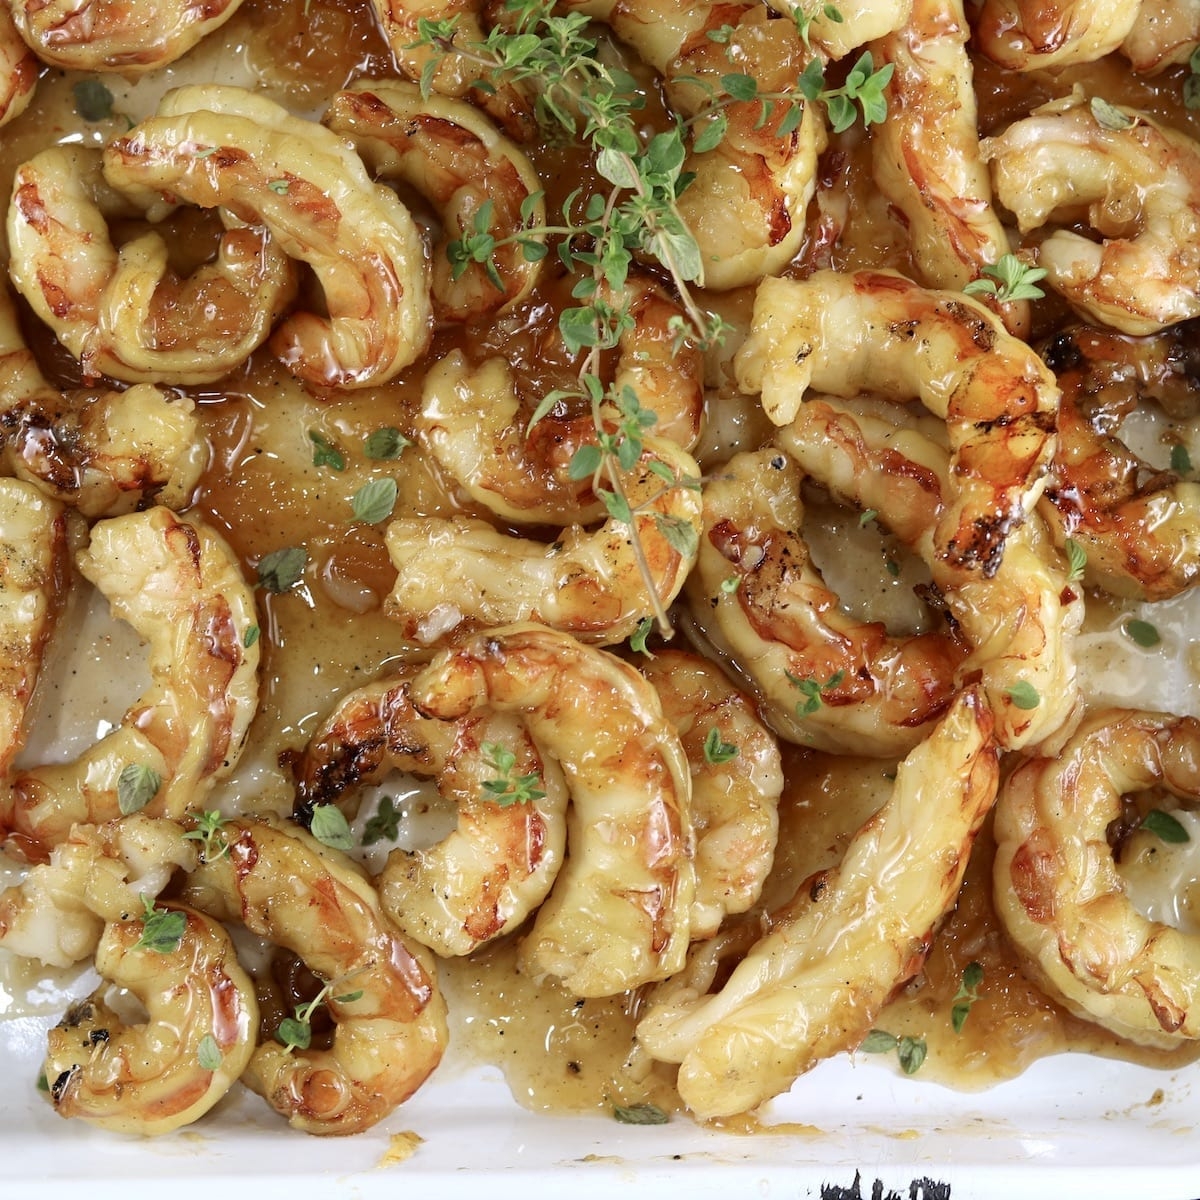 Grilled Pineapple Grilled Shrimp on a tray